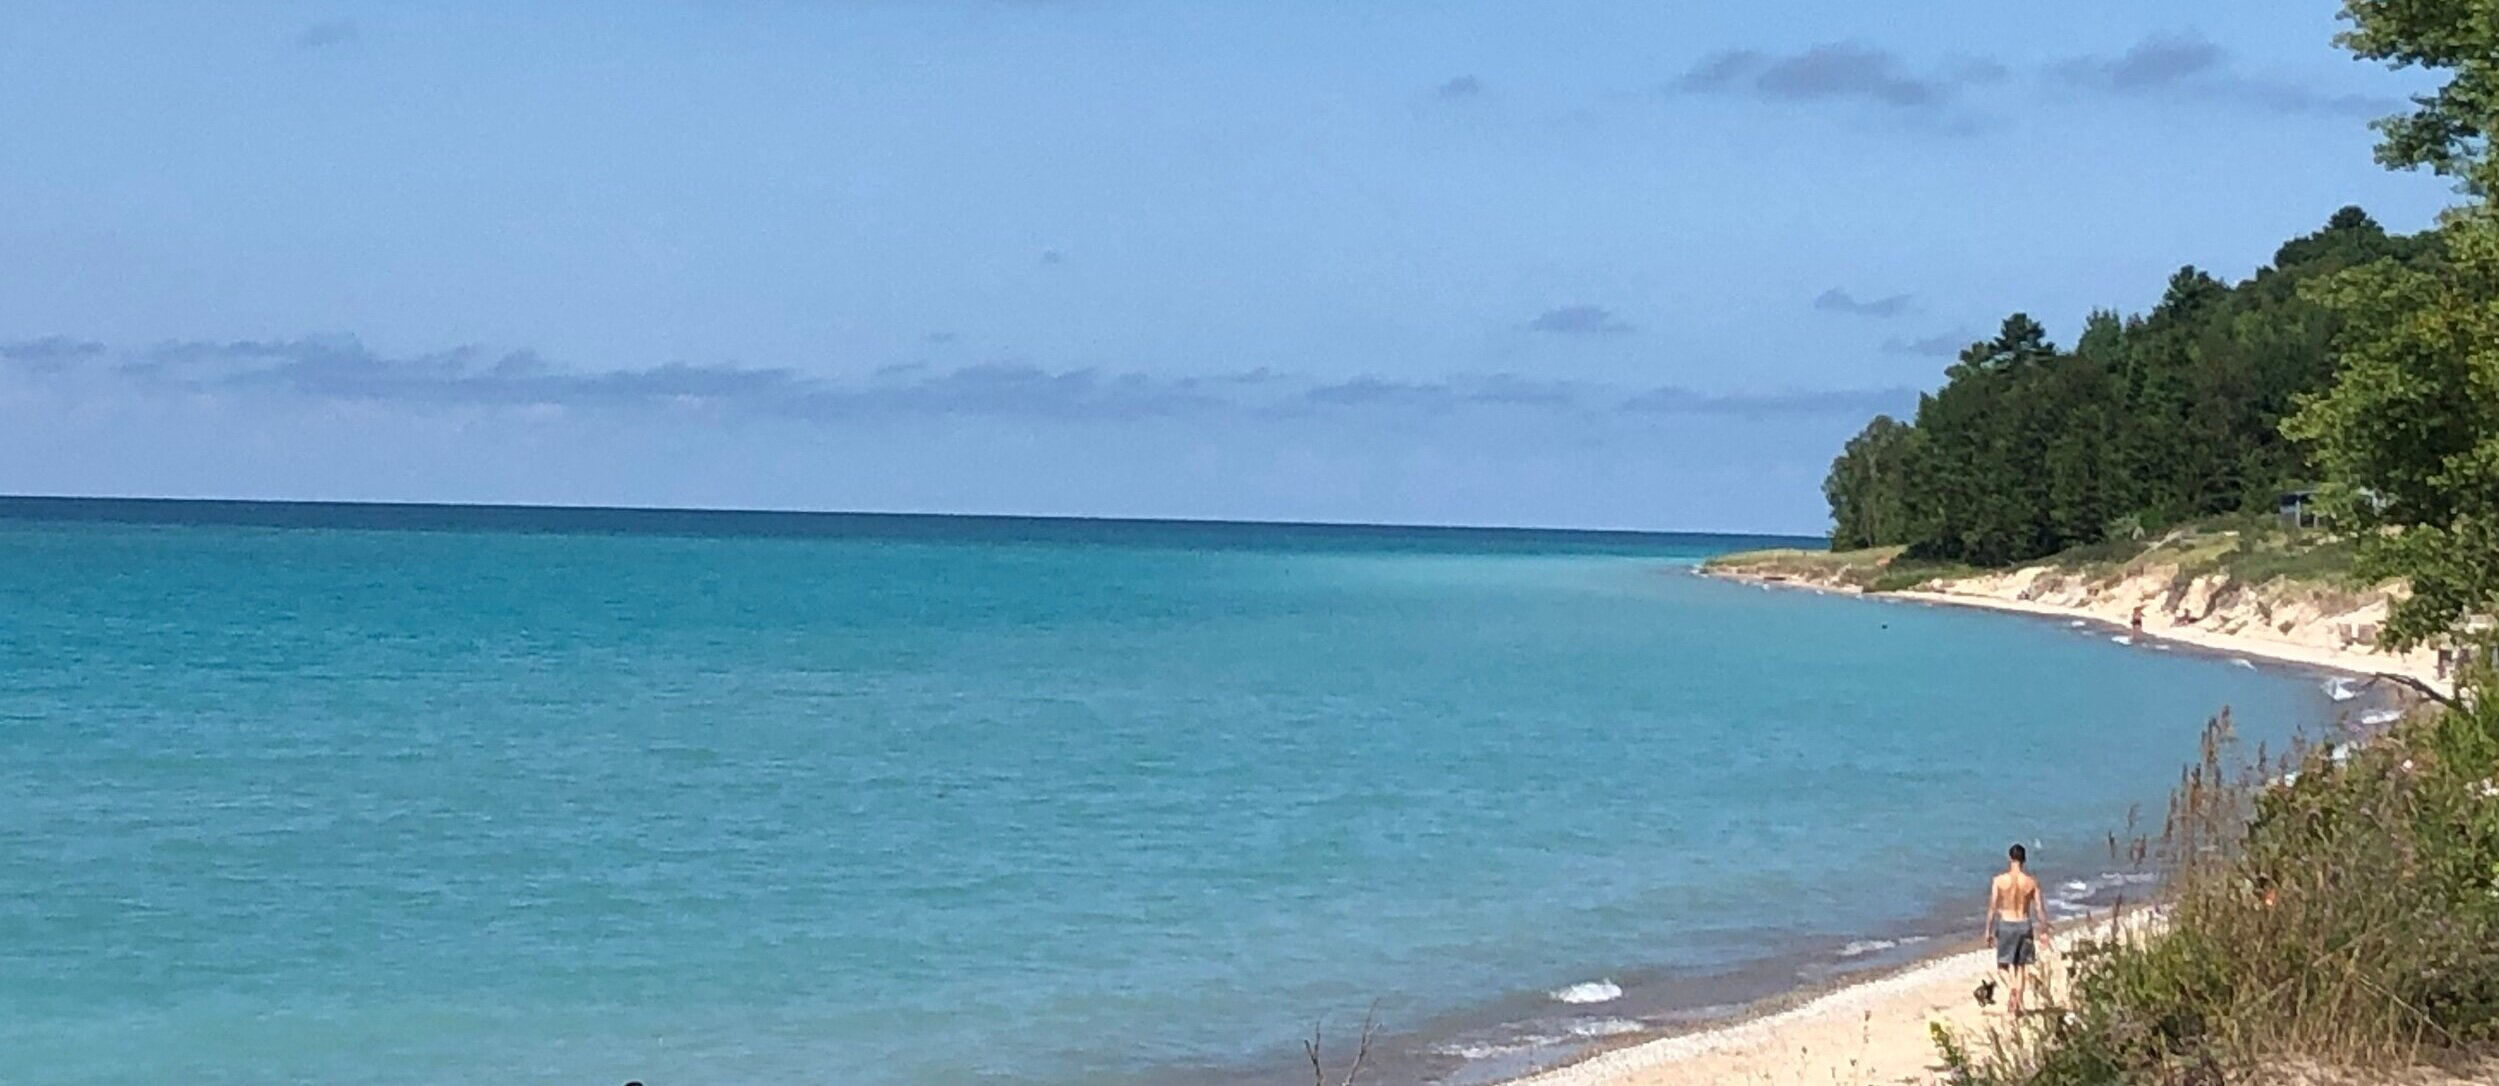 TURQUOISE blue water of Lake Michigan at CHRISTMAS Cove